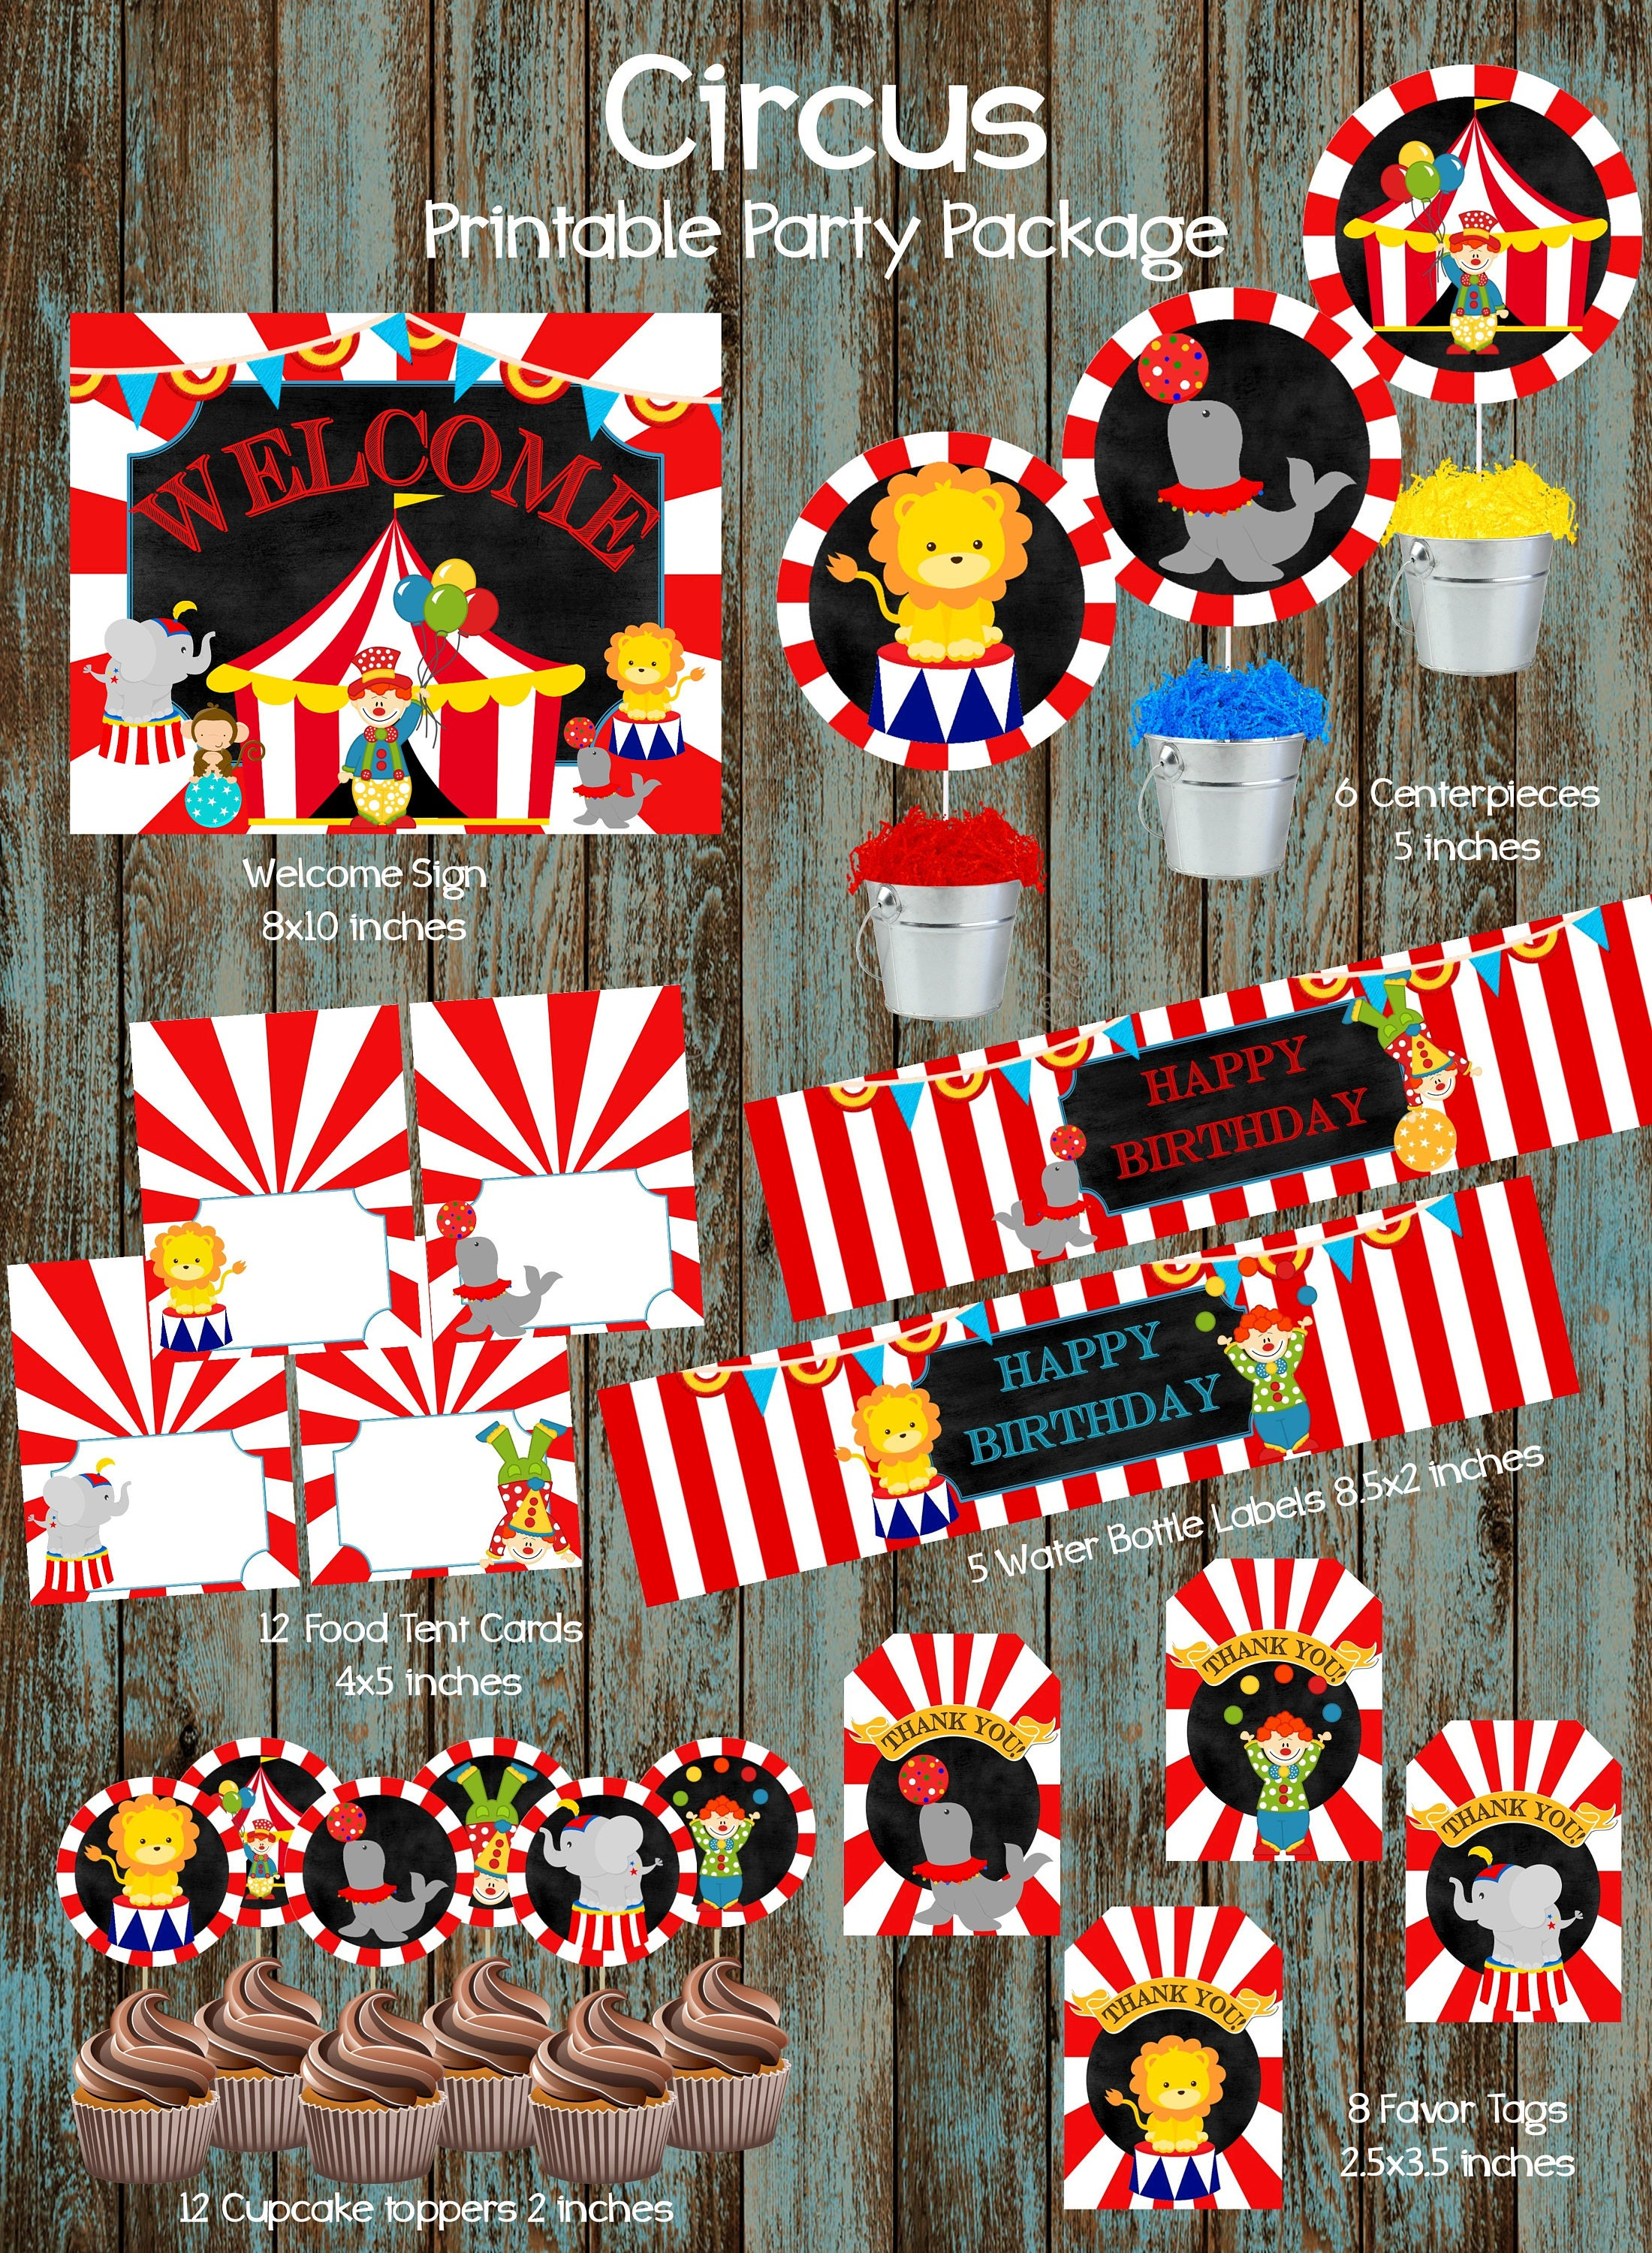 hats decor centerpieces birthday supplies party via cheap circus decorations ideas home carnival table